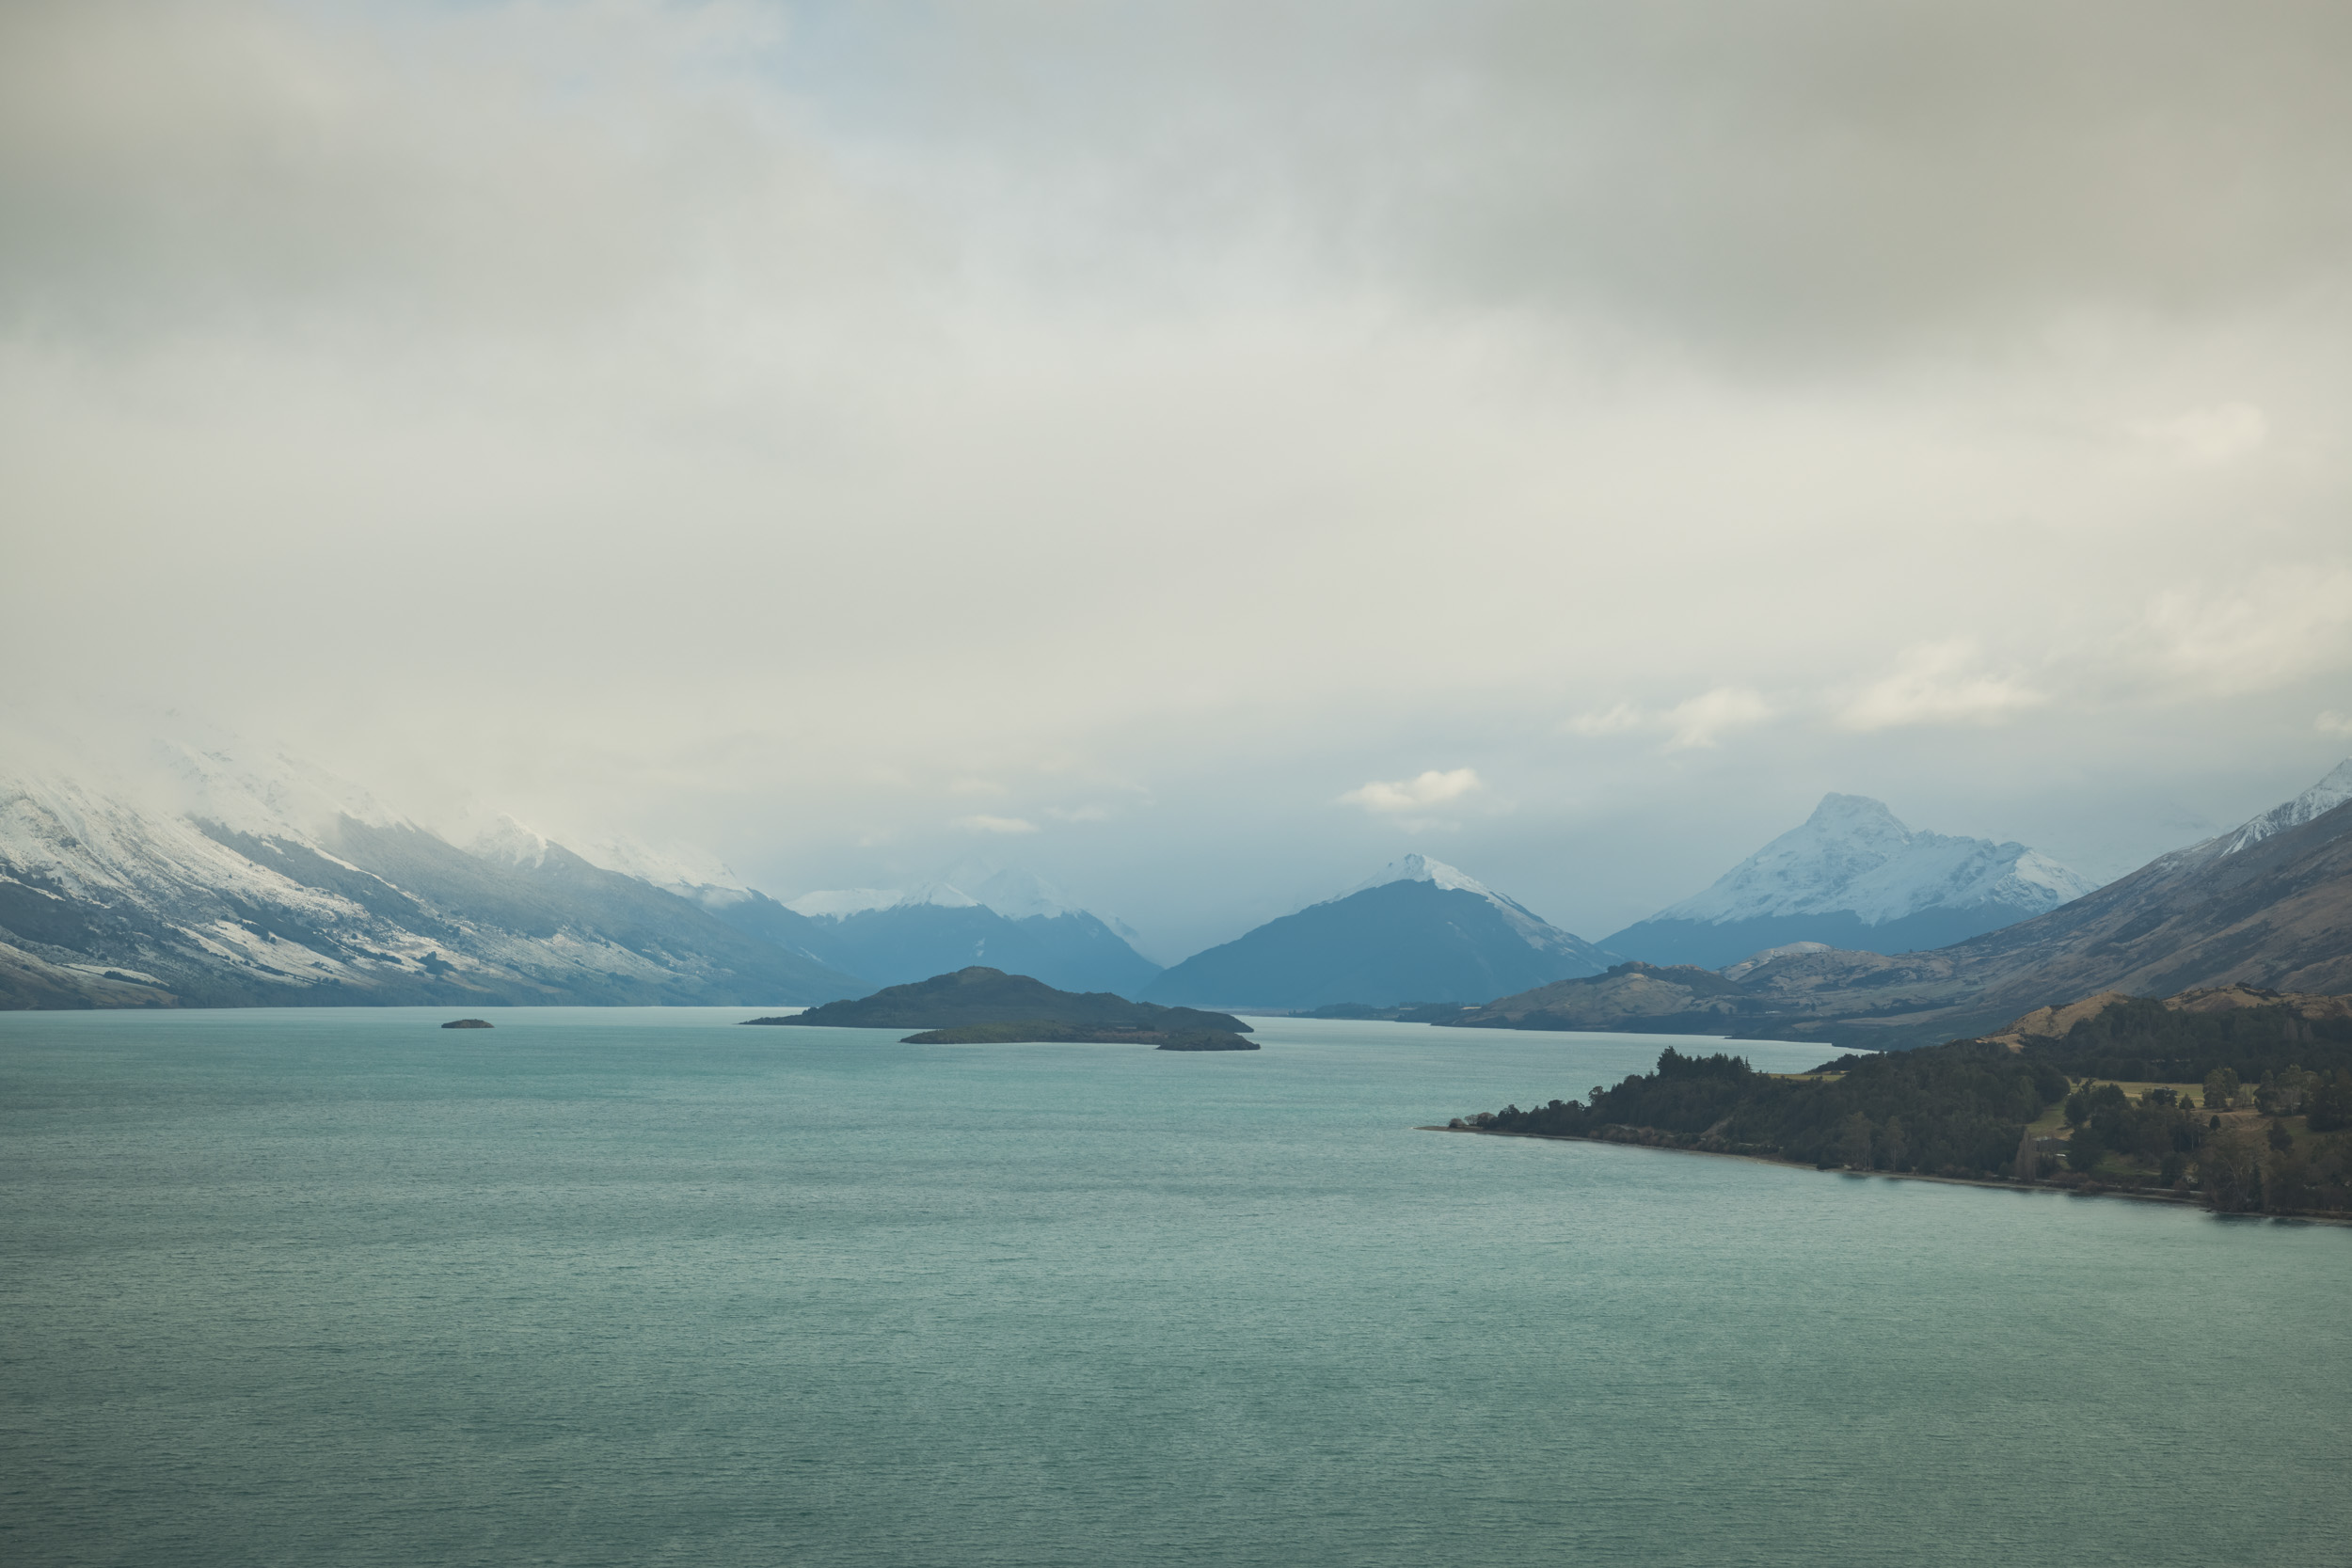 Bennets Bluff Lookout on the Road to Glenorchy, Queenstown NZ. Professional Landscape Photographs included in your trip pacakge